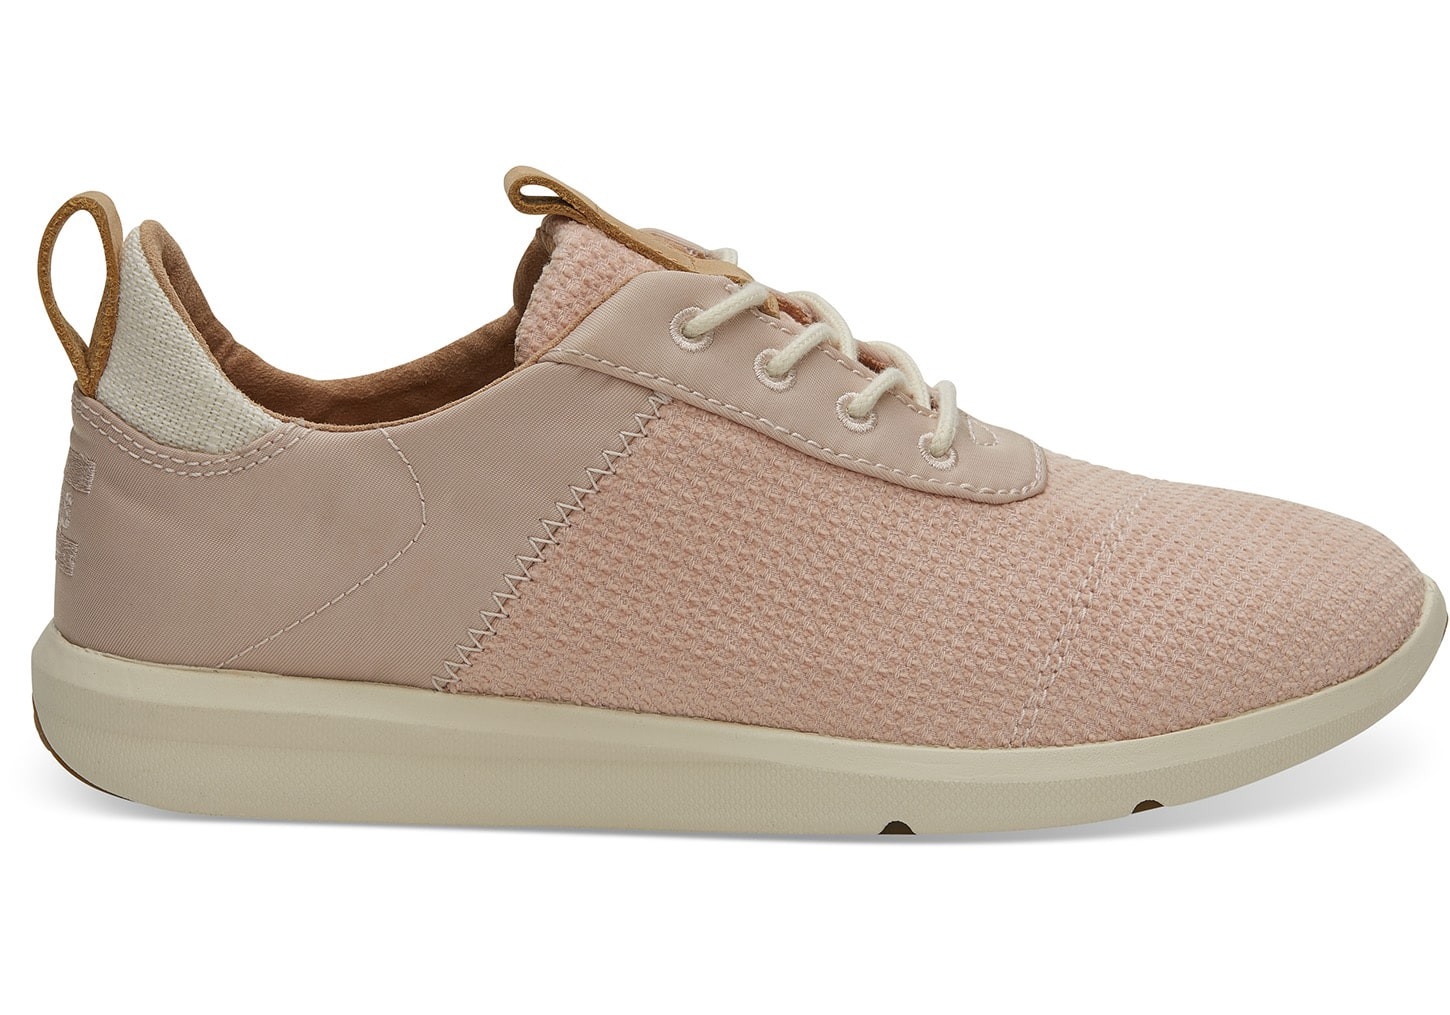 b3e310f82cdd TOMS Rose Cloud Women s Cabrillo Sneakers Shoes by TOMS in 2018 ...